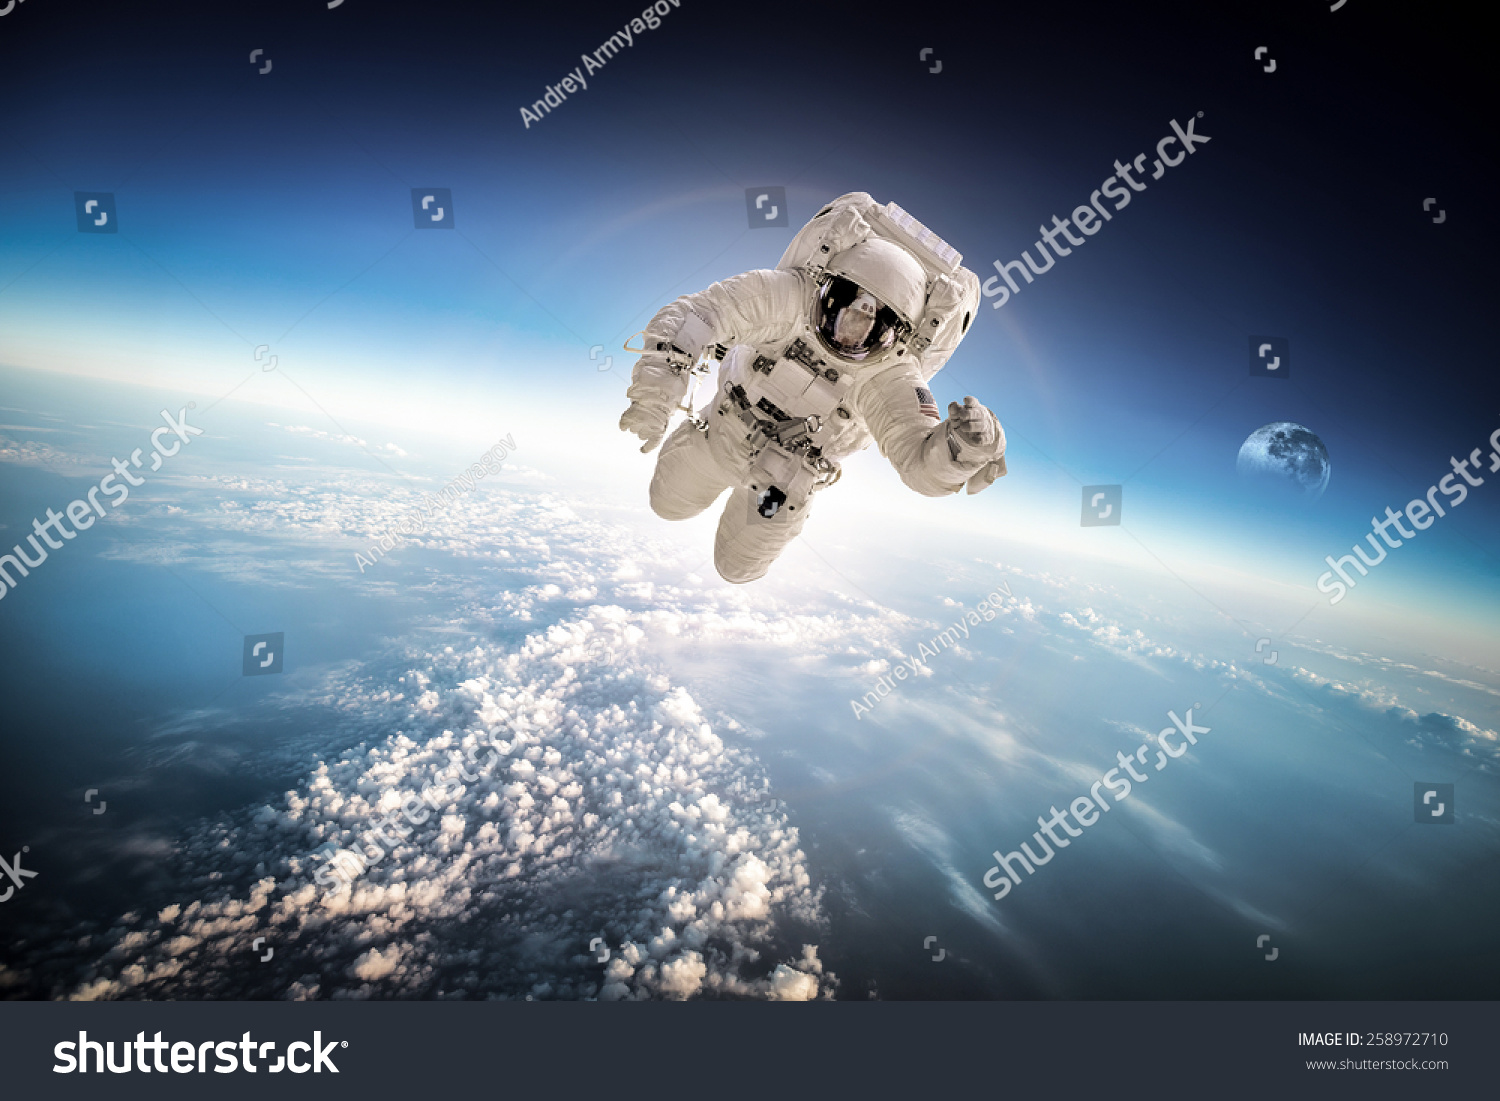 Astronaut in outer space against the backdrop of the for Outer space elements